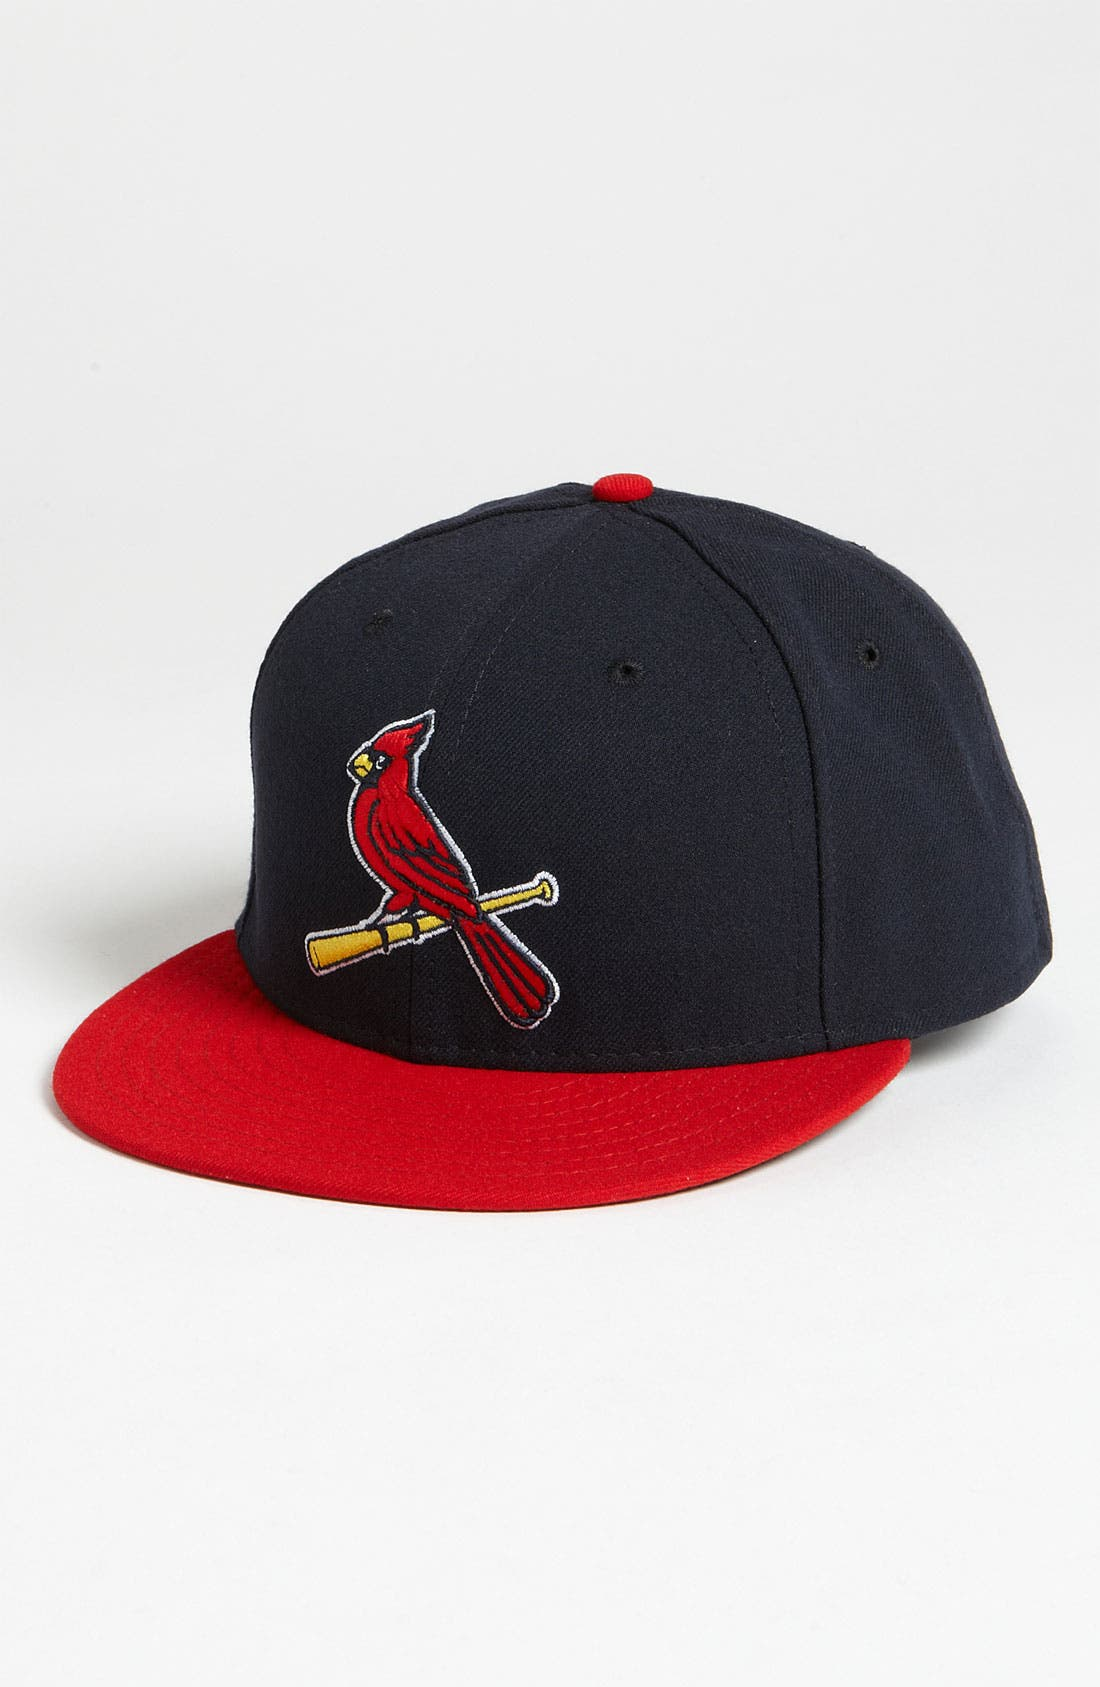 Main Image - New Era Cap 'St. Louis Cardinals' Baseball Cap